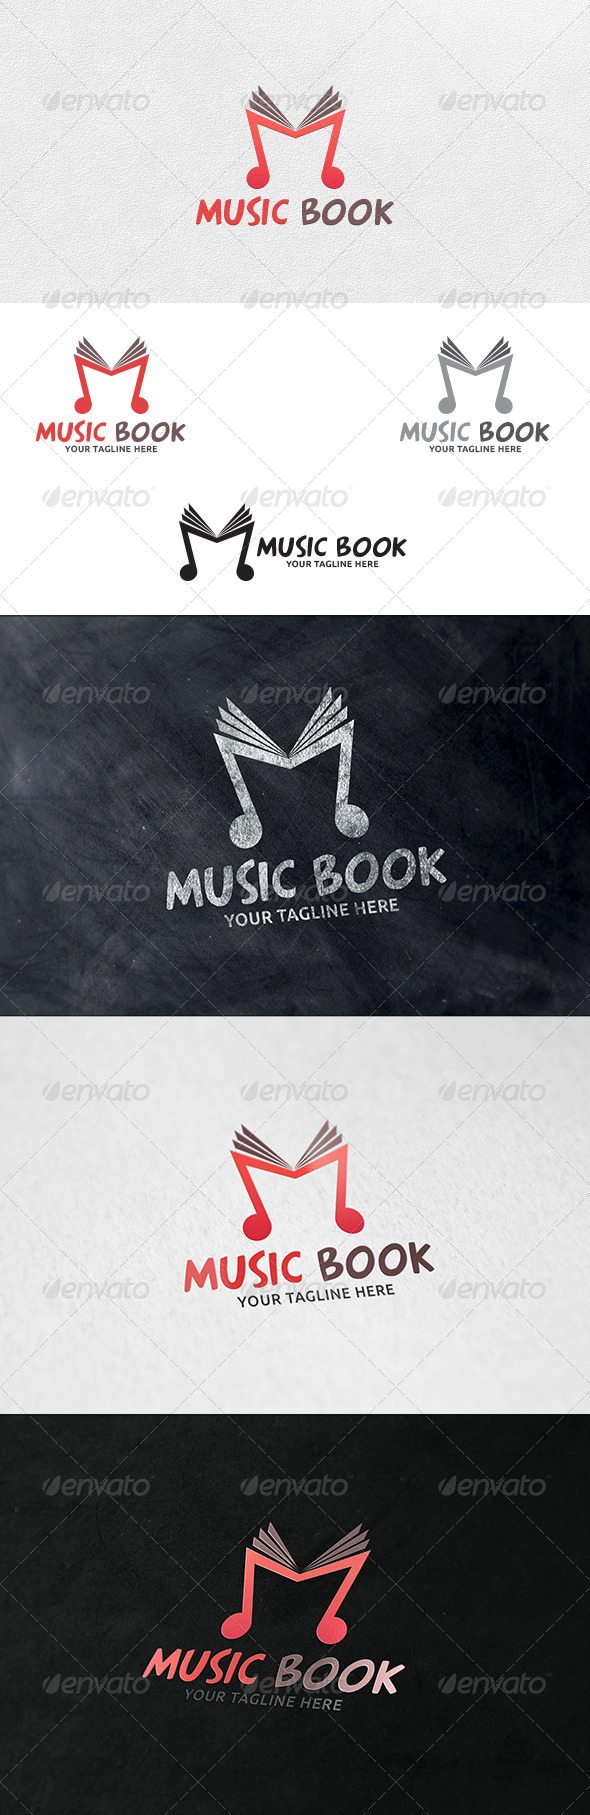 Music Book - Logo Template